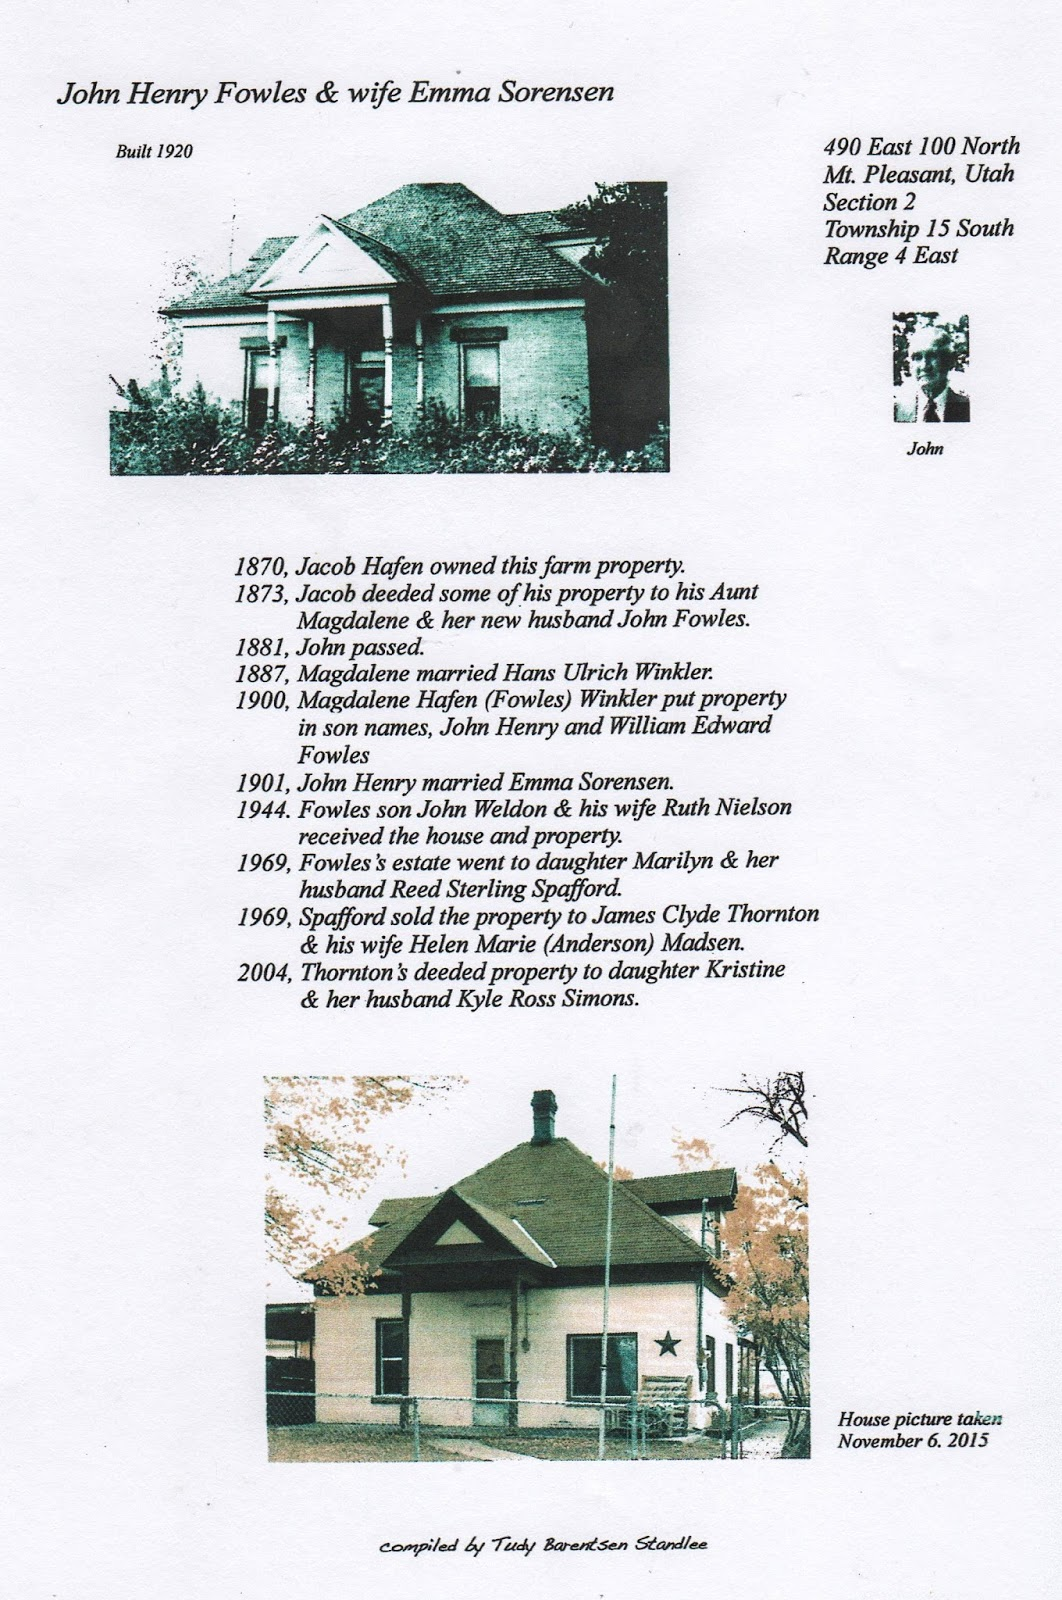 Mt Pleasant Pioneer 3 1 17 4 Circuit Board Elite Miracle1 Gates Home Of John Henry Fowles And Wife Emma Sorensen Researched Compiled By Tudy Barentsen Standlee